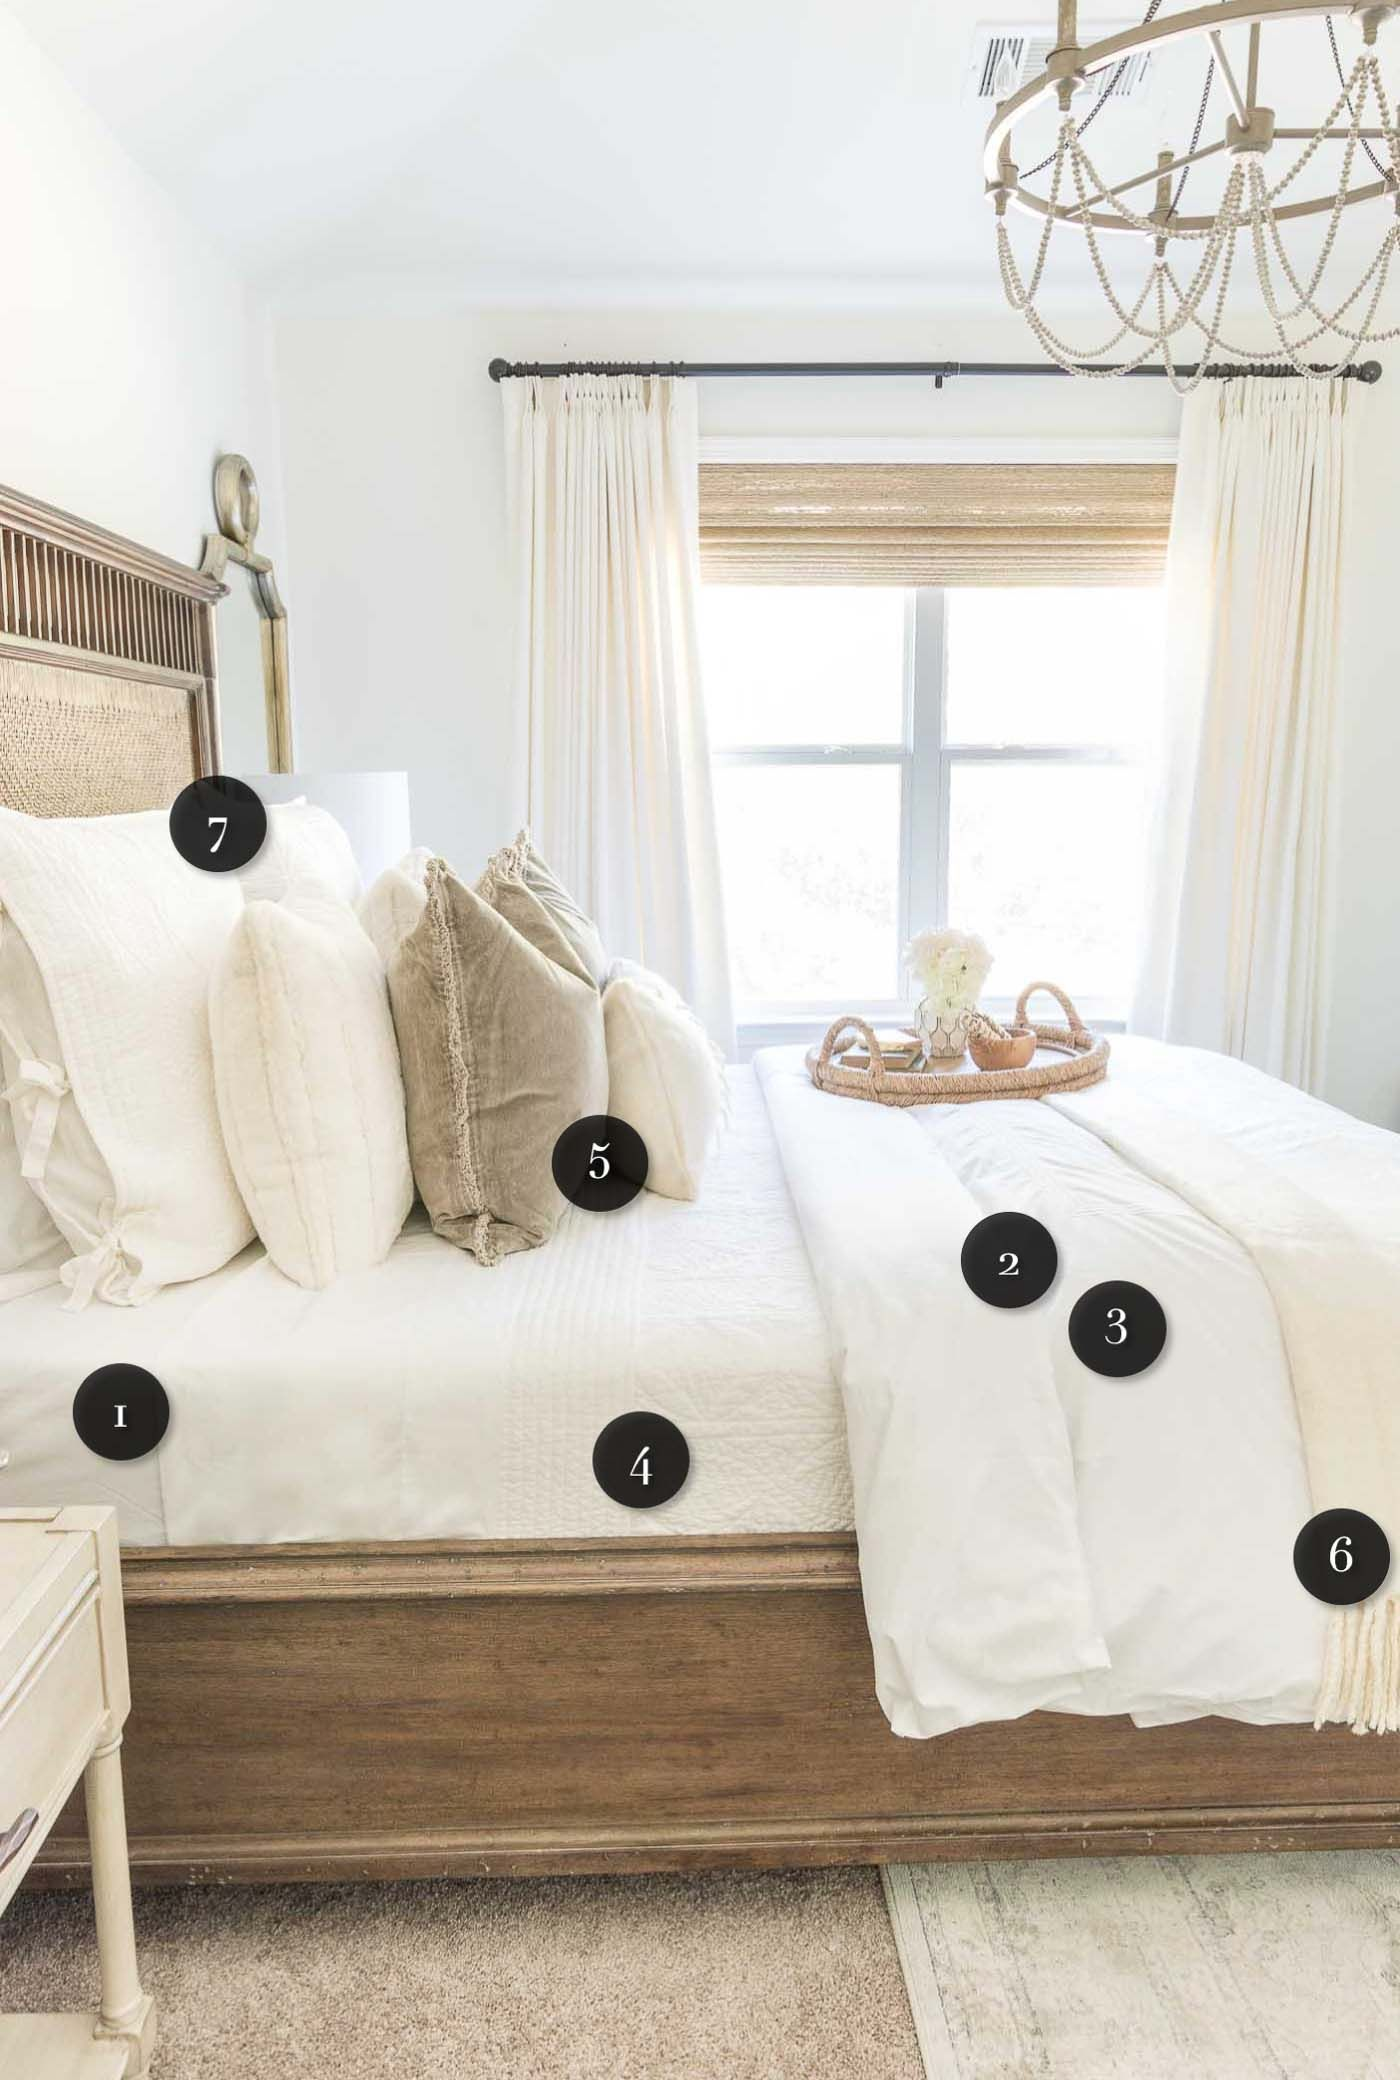 How to Make Your Bed by Mixing & Matching Favorite Bedding